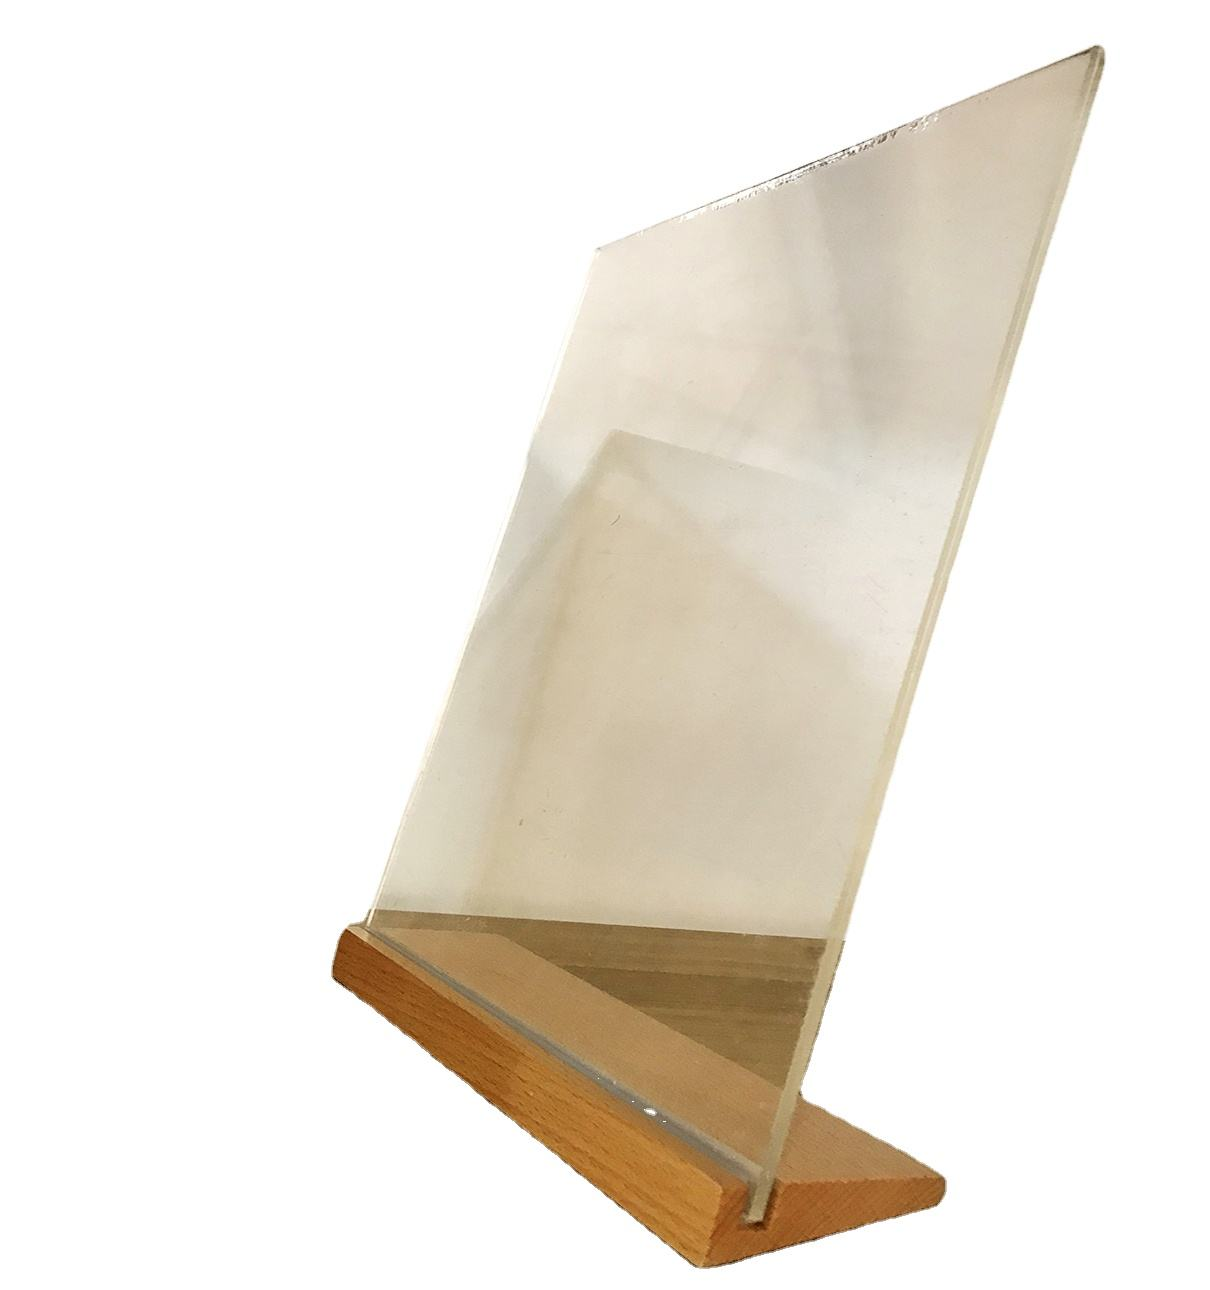 high clear acrylic display stand acrylic sign holders 8.5 X 11